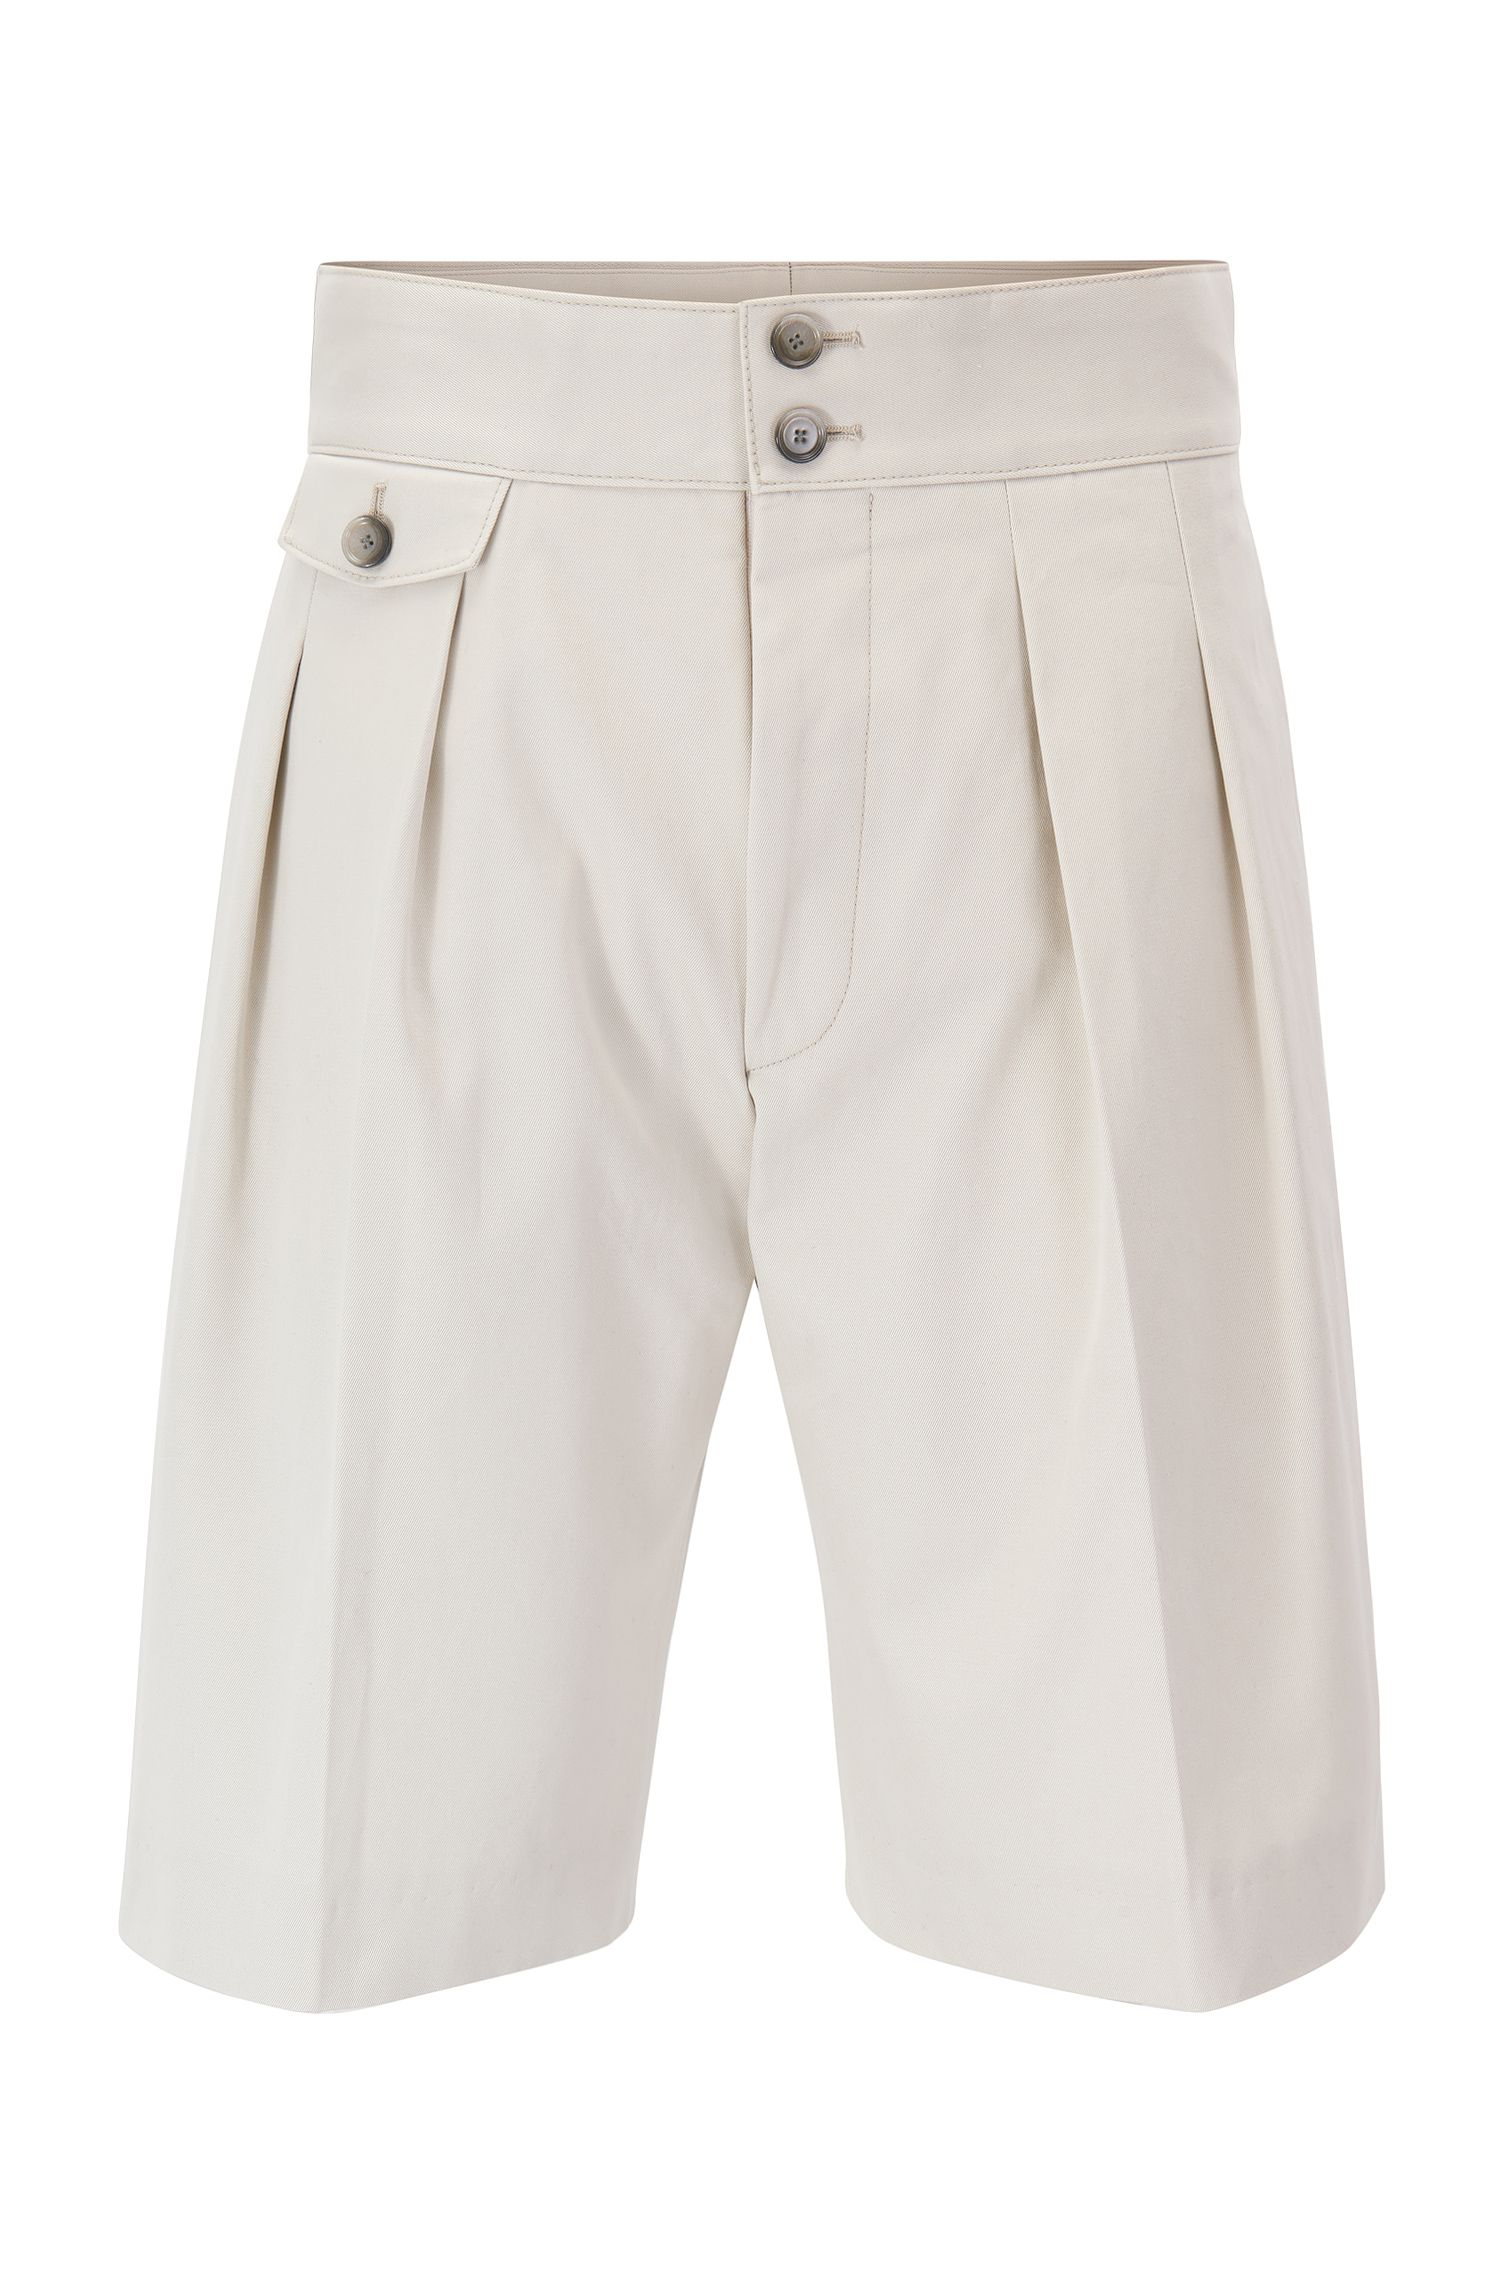 High Waisted Pleated Shorts | 'Anker'